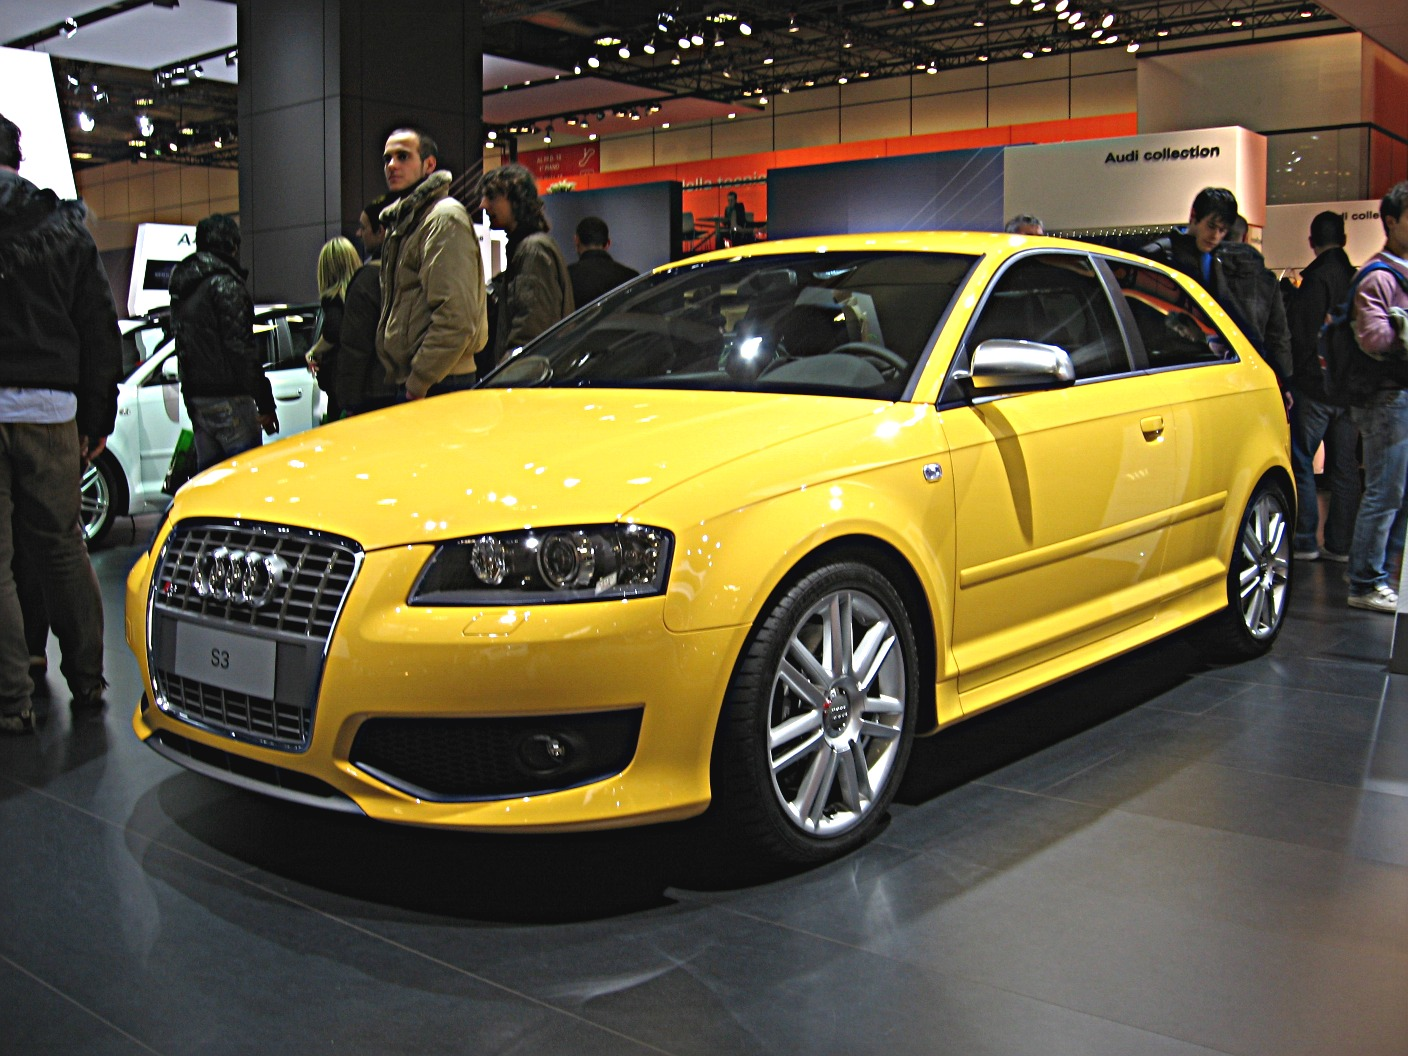 2007 Audi S3 ii (8p) - pictures, information and specs - Auto-Database.com